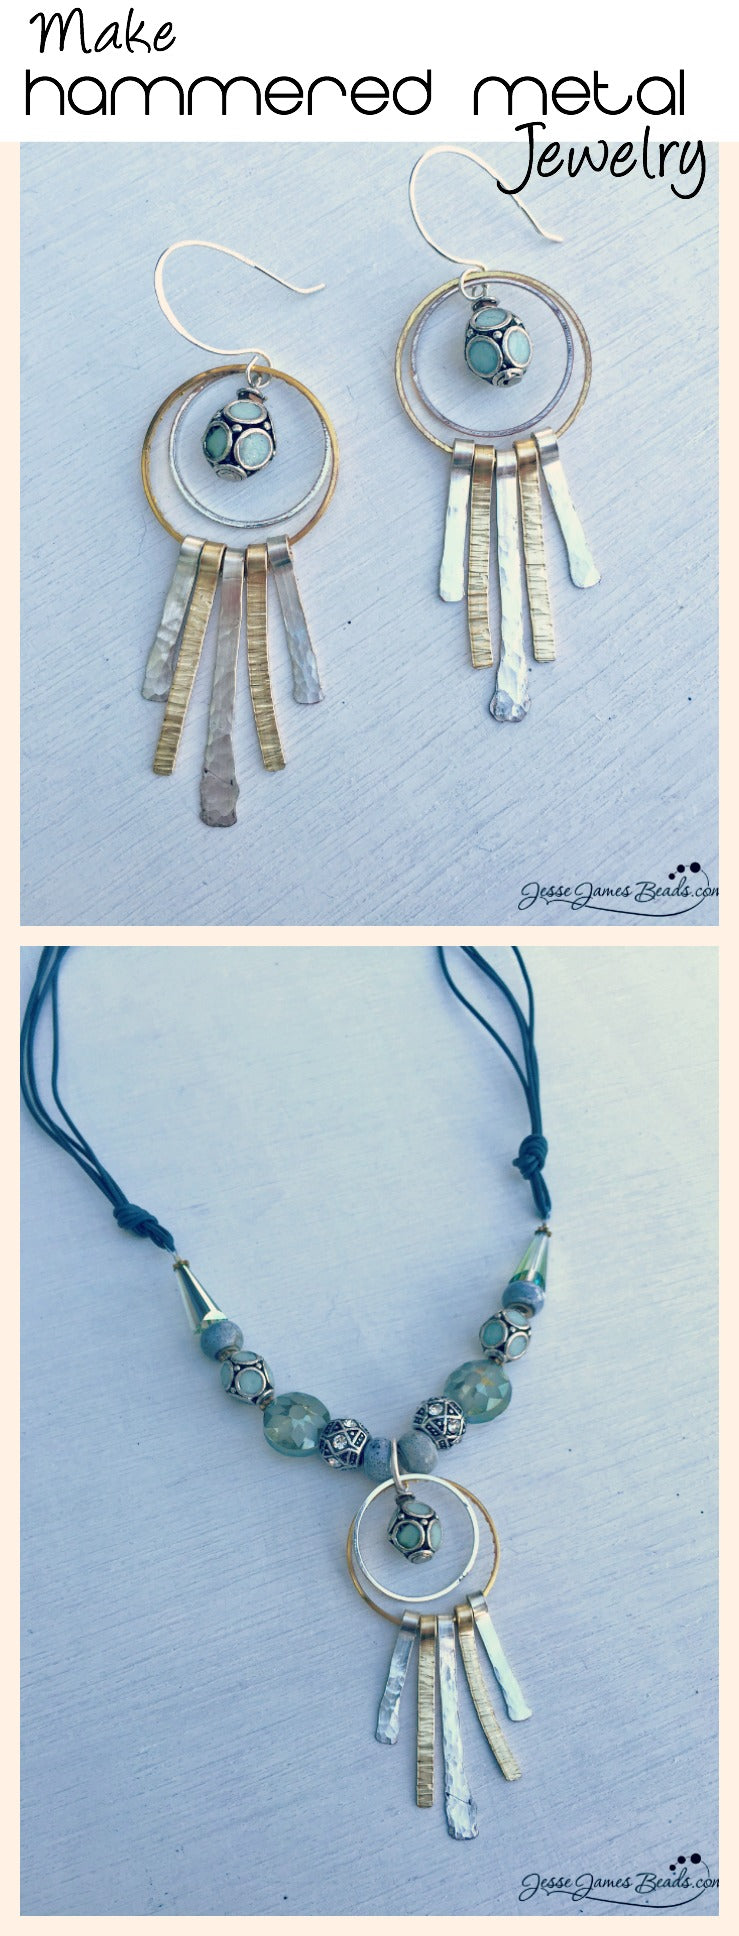 How to Make Hammered Metal Jewelry - Learn to make metal jewerly with Candie Cooper and Jesse James Beads at Bead Fest